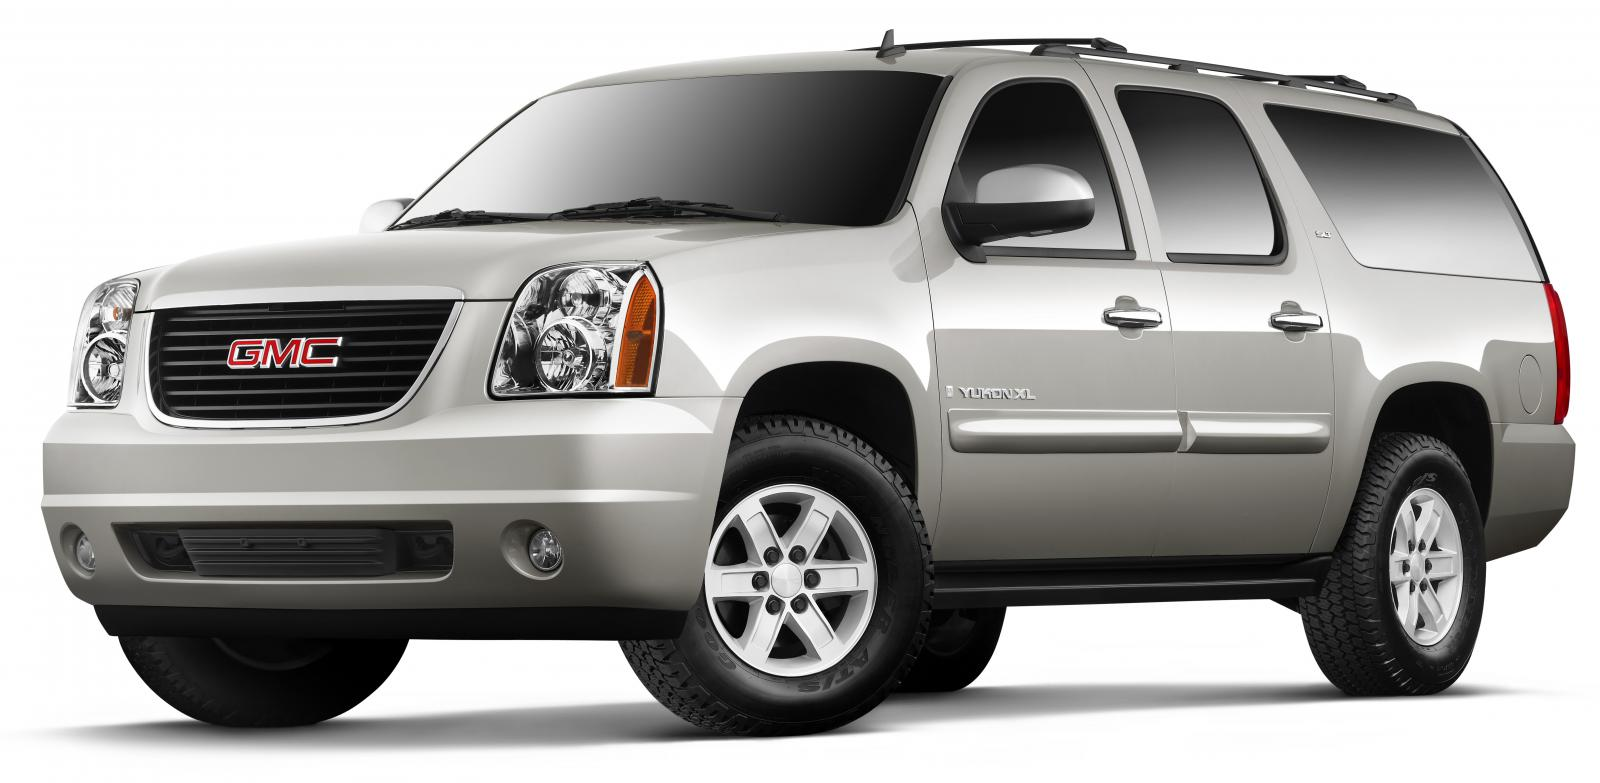 2008 gmc yukon xl information and photos zombiedrive. Black Bedroom Furniture Sets. Home Design Ideas